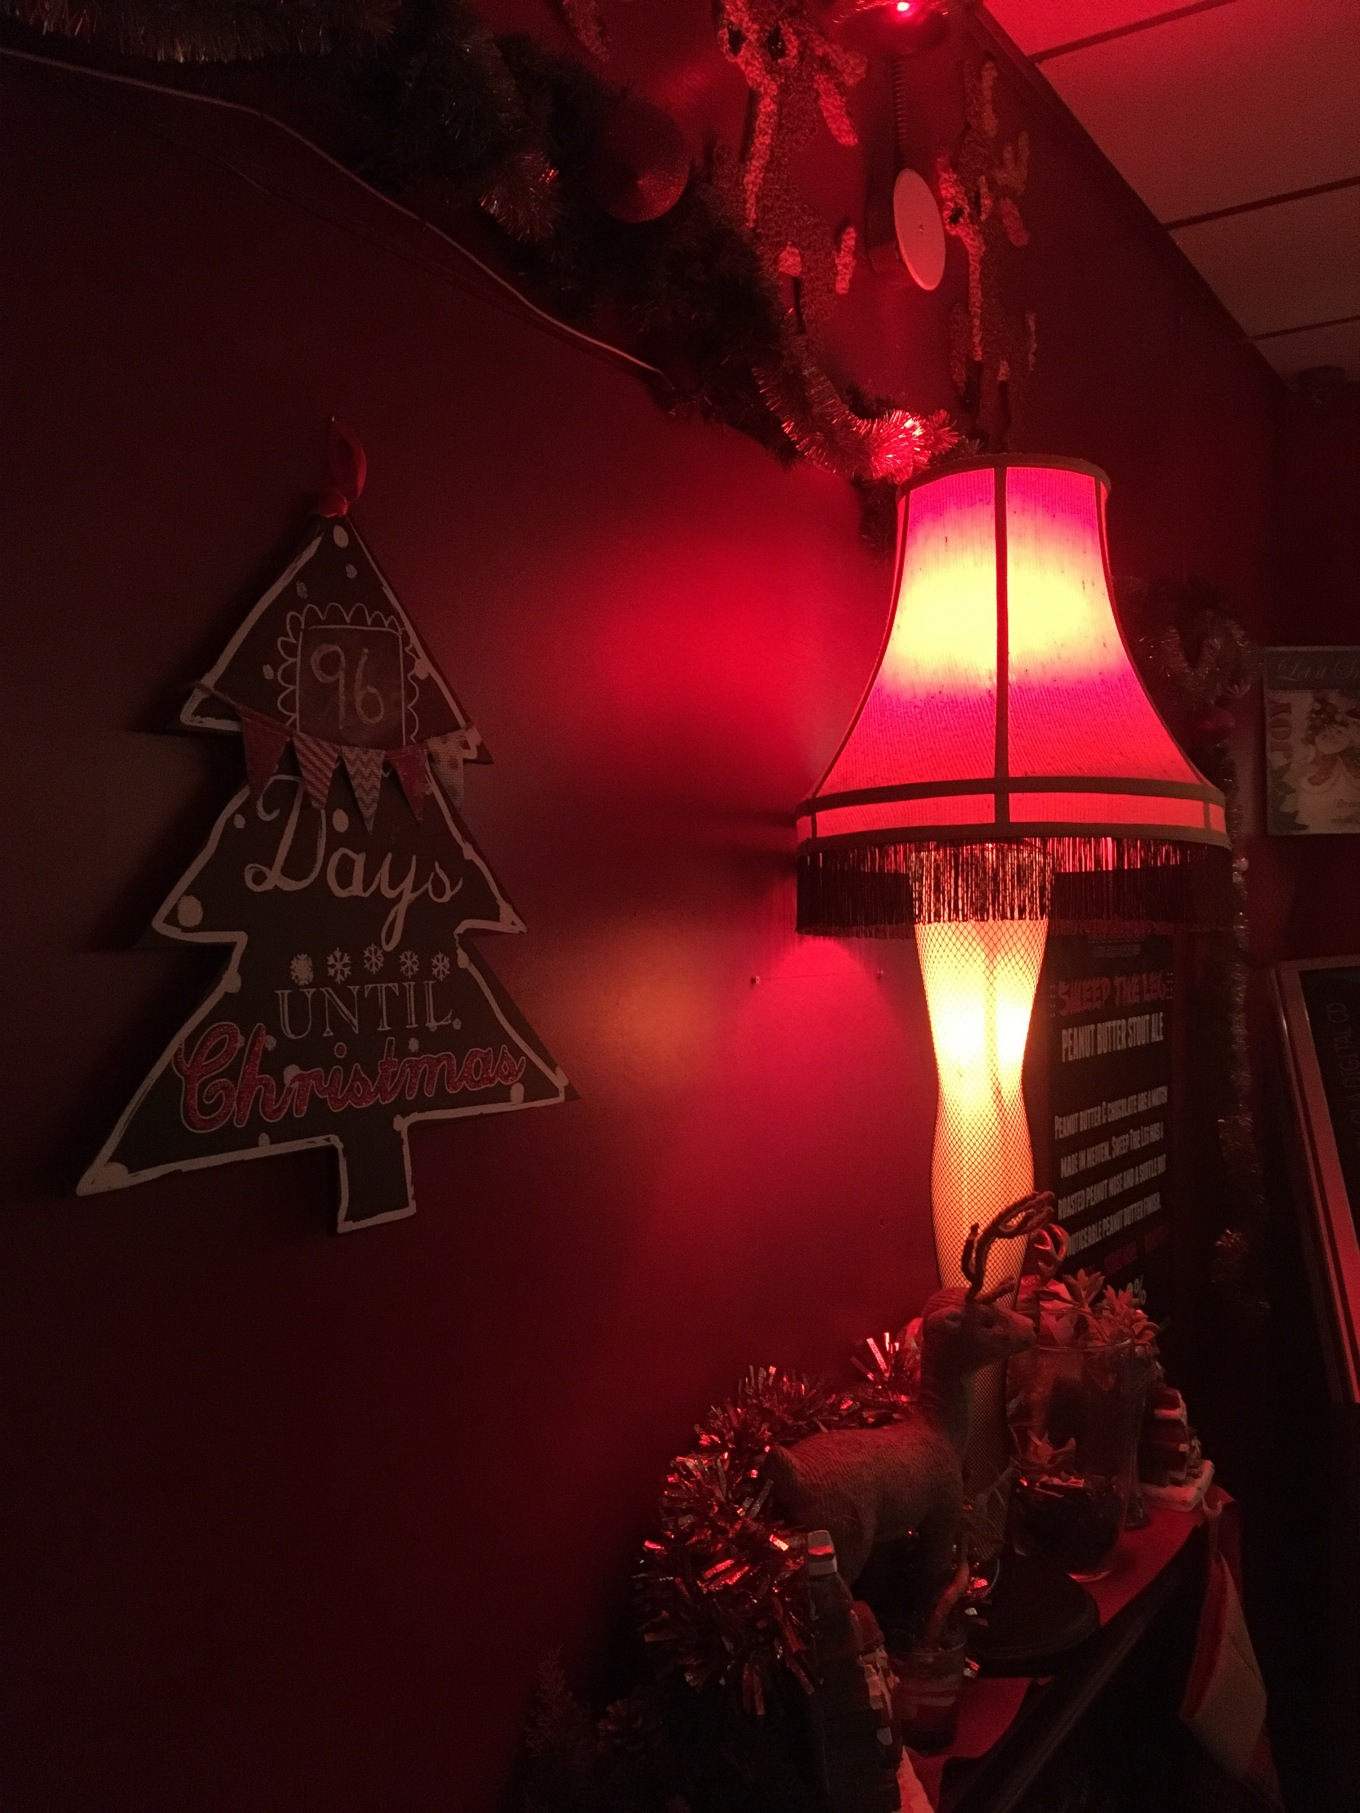 Sign saying 96 days until Christmas and replica of leg lamp from the movie A Christmas Story decorations at La La's Little Nugget in Austin, Texas